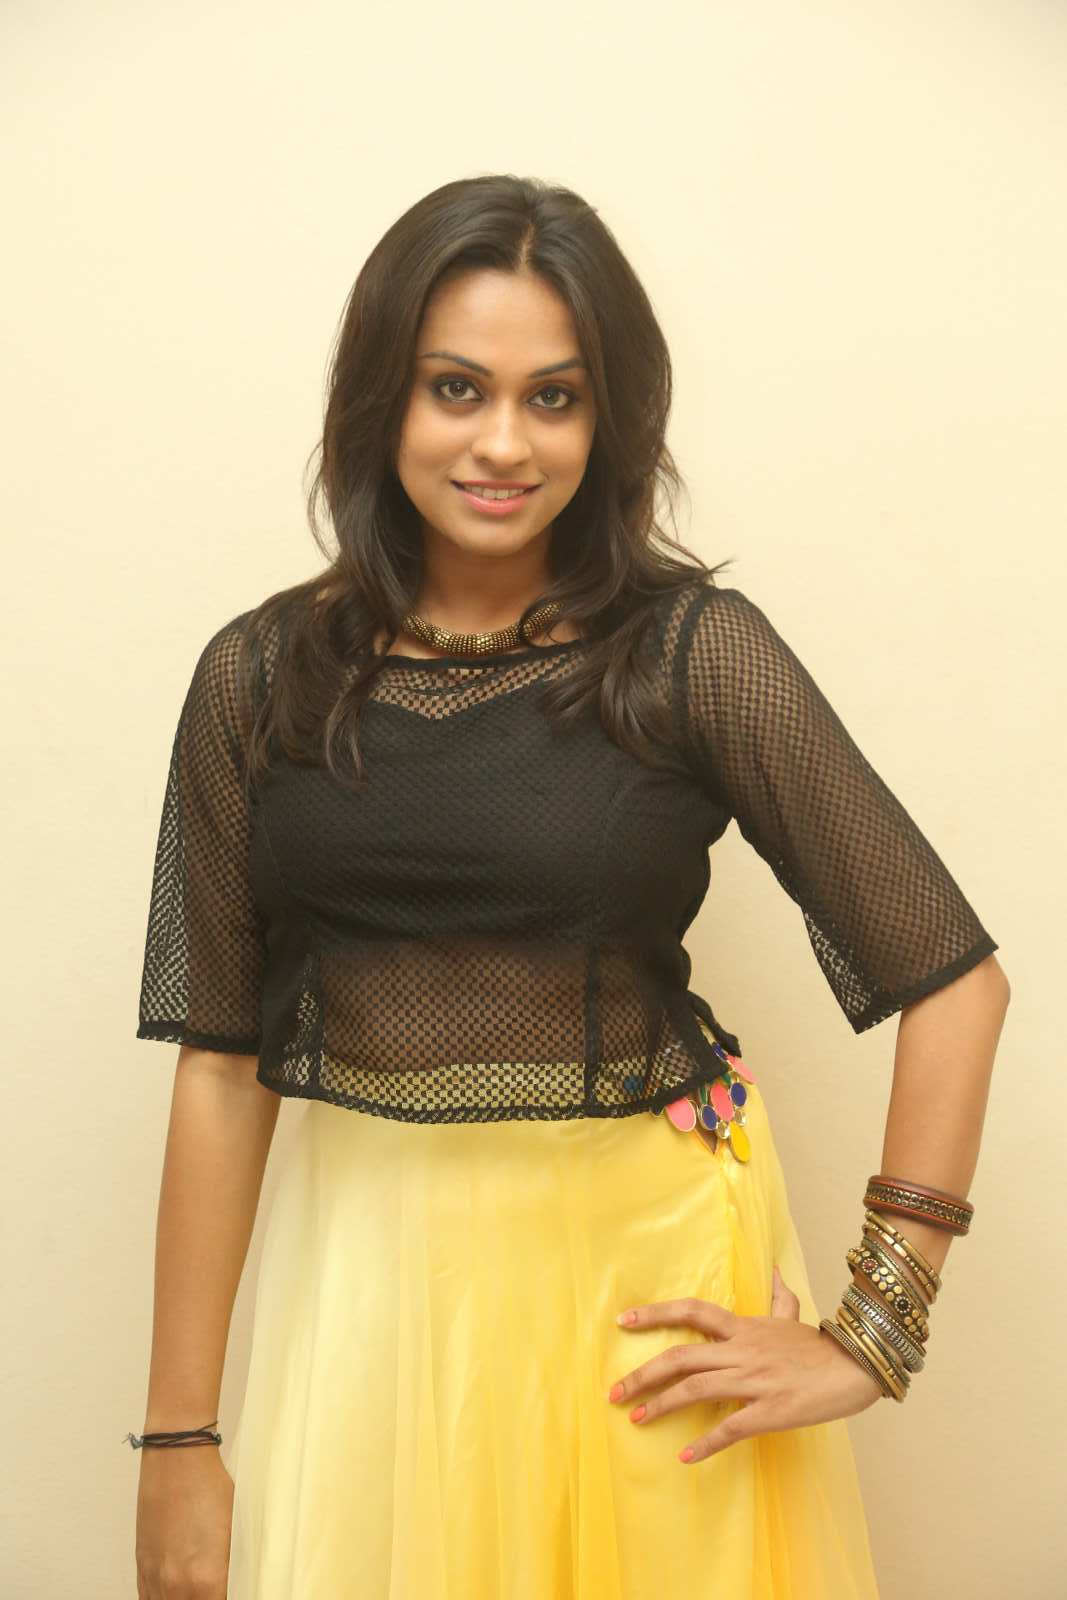 Geetha bhagath dazzling photos gallery-HQ-Photo-19